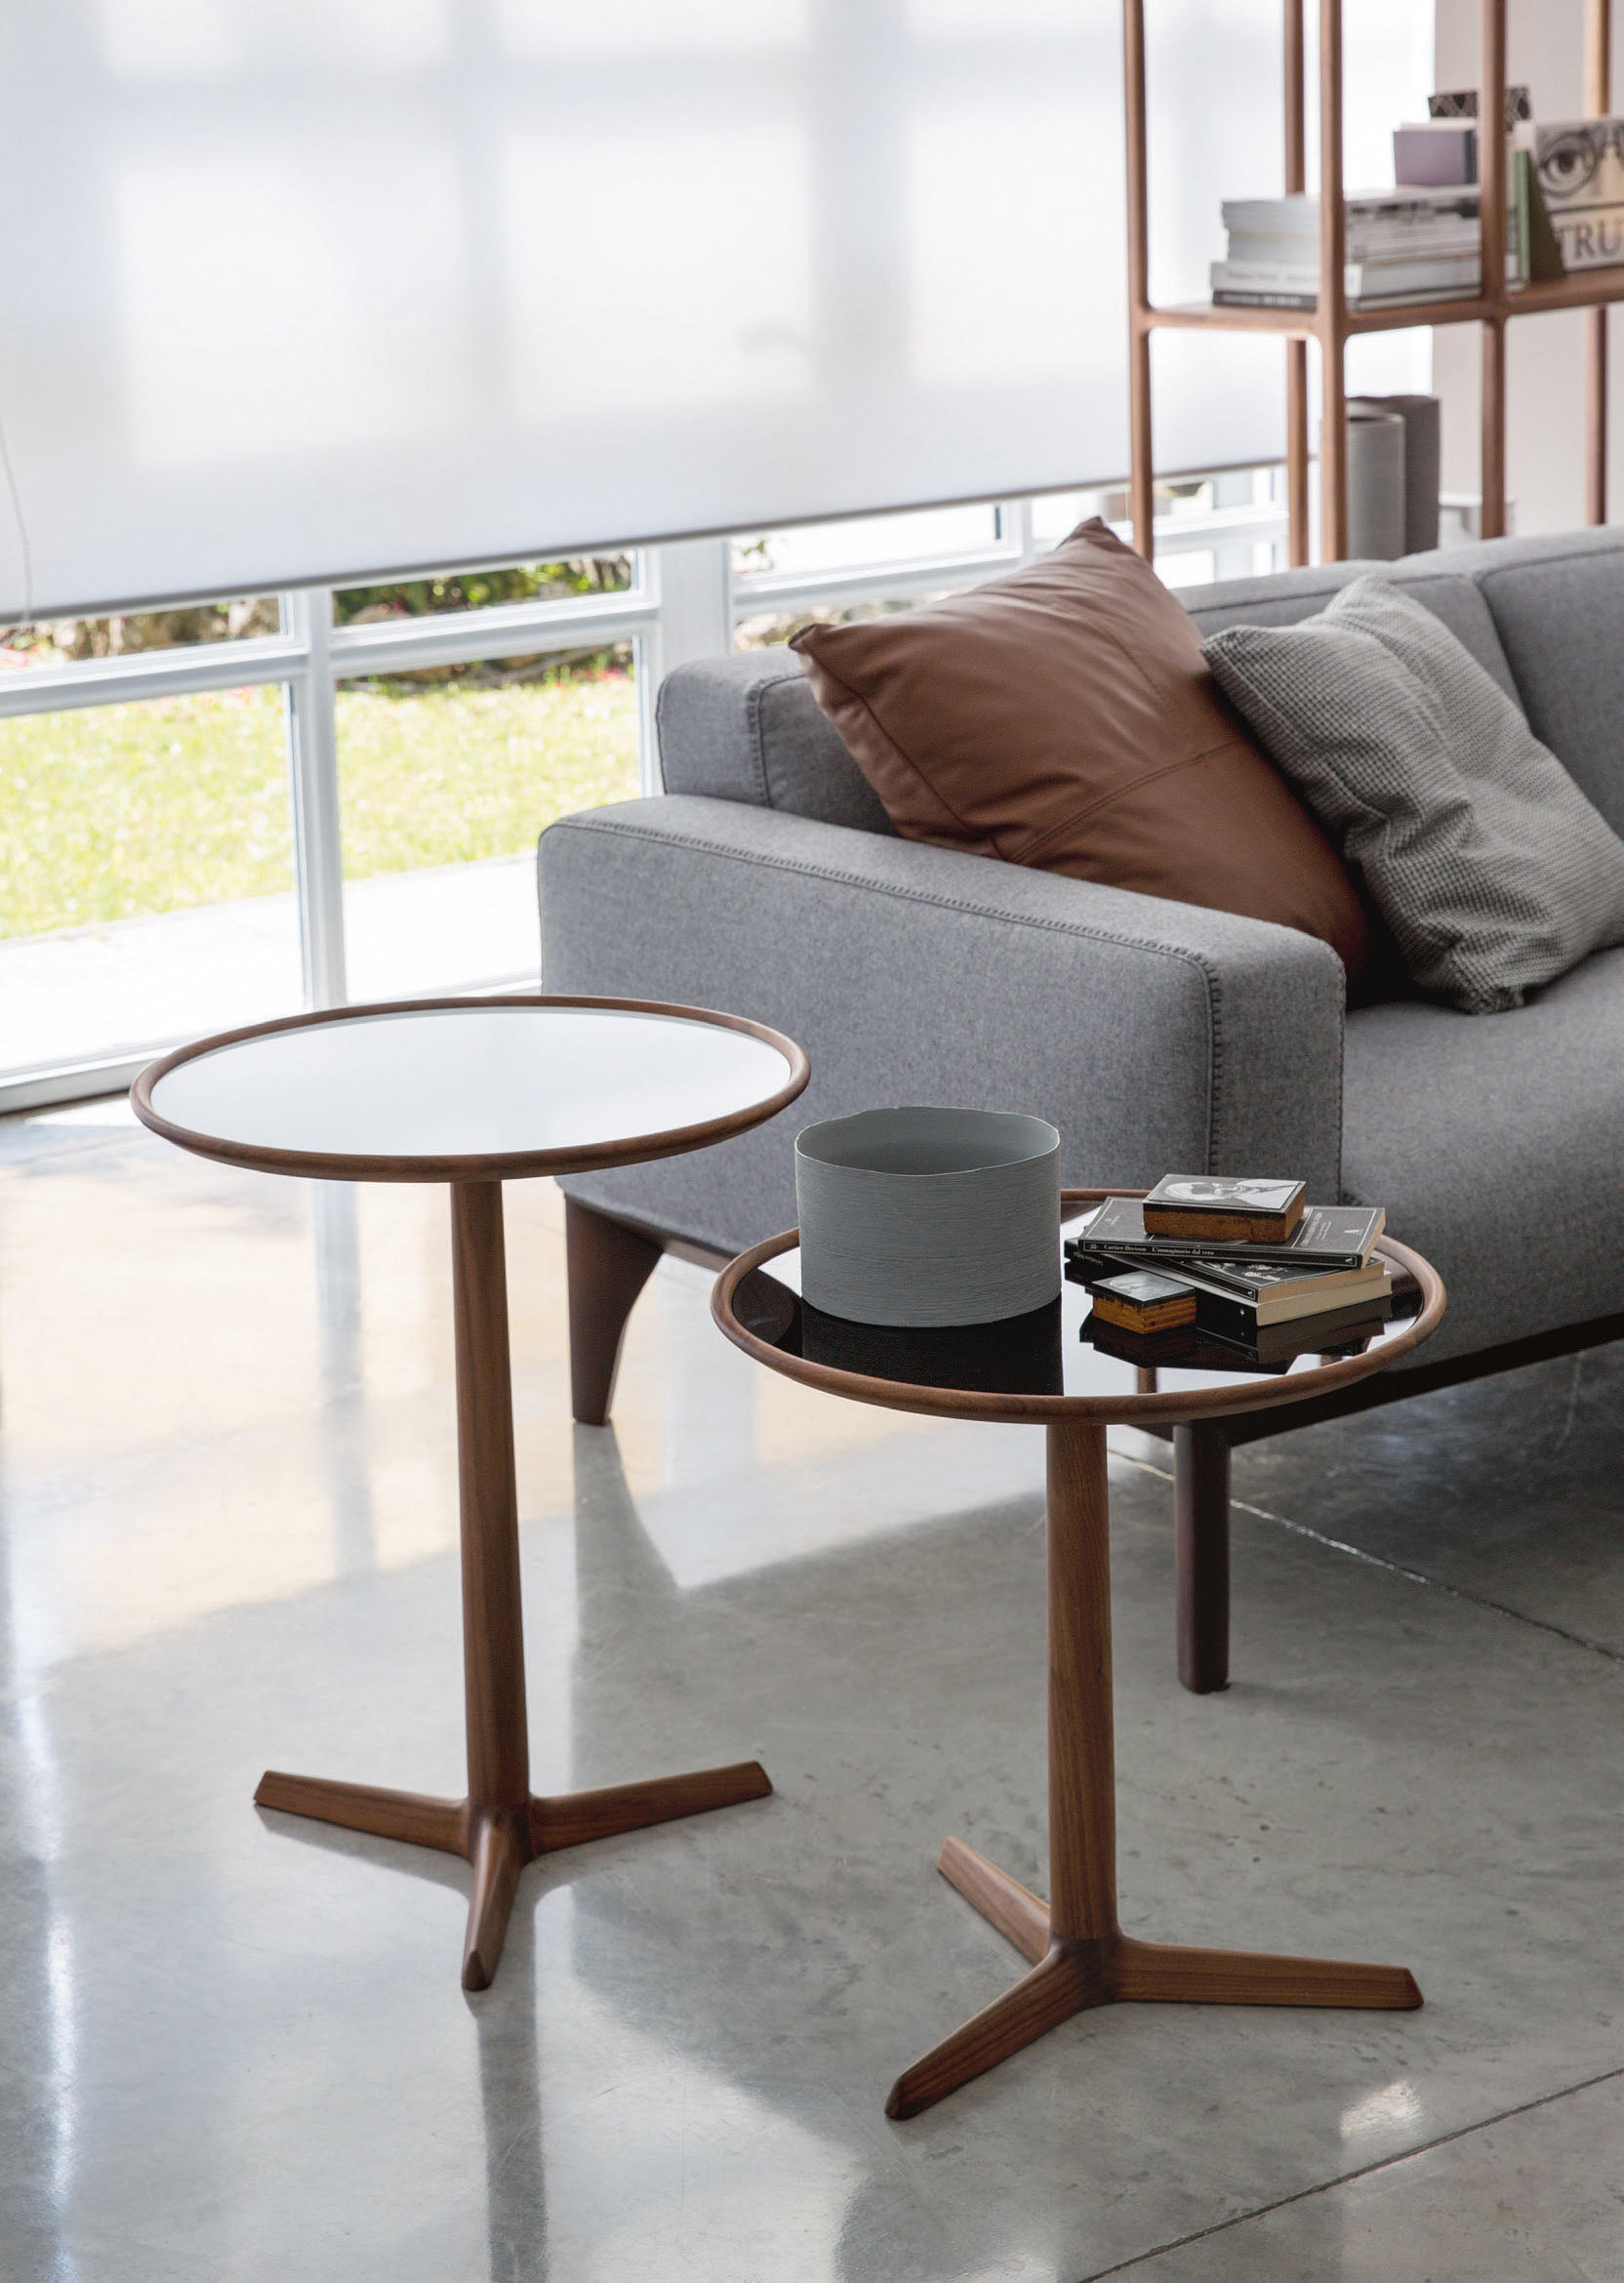 PAUSA Side tables from Porada